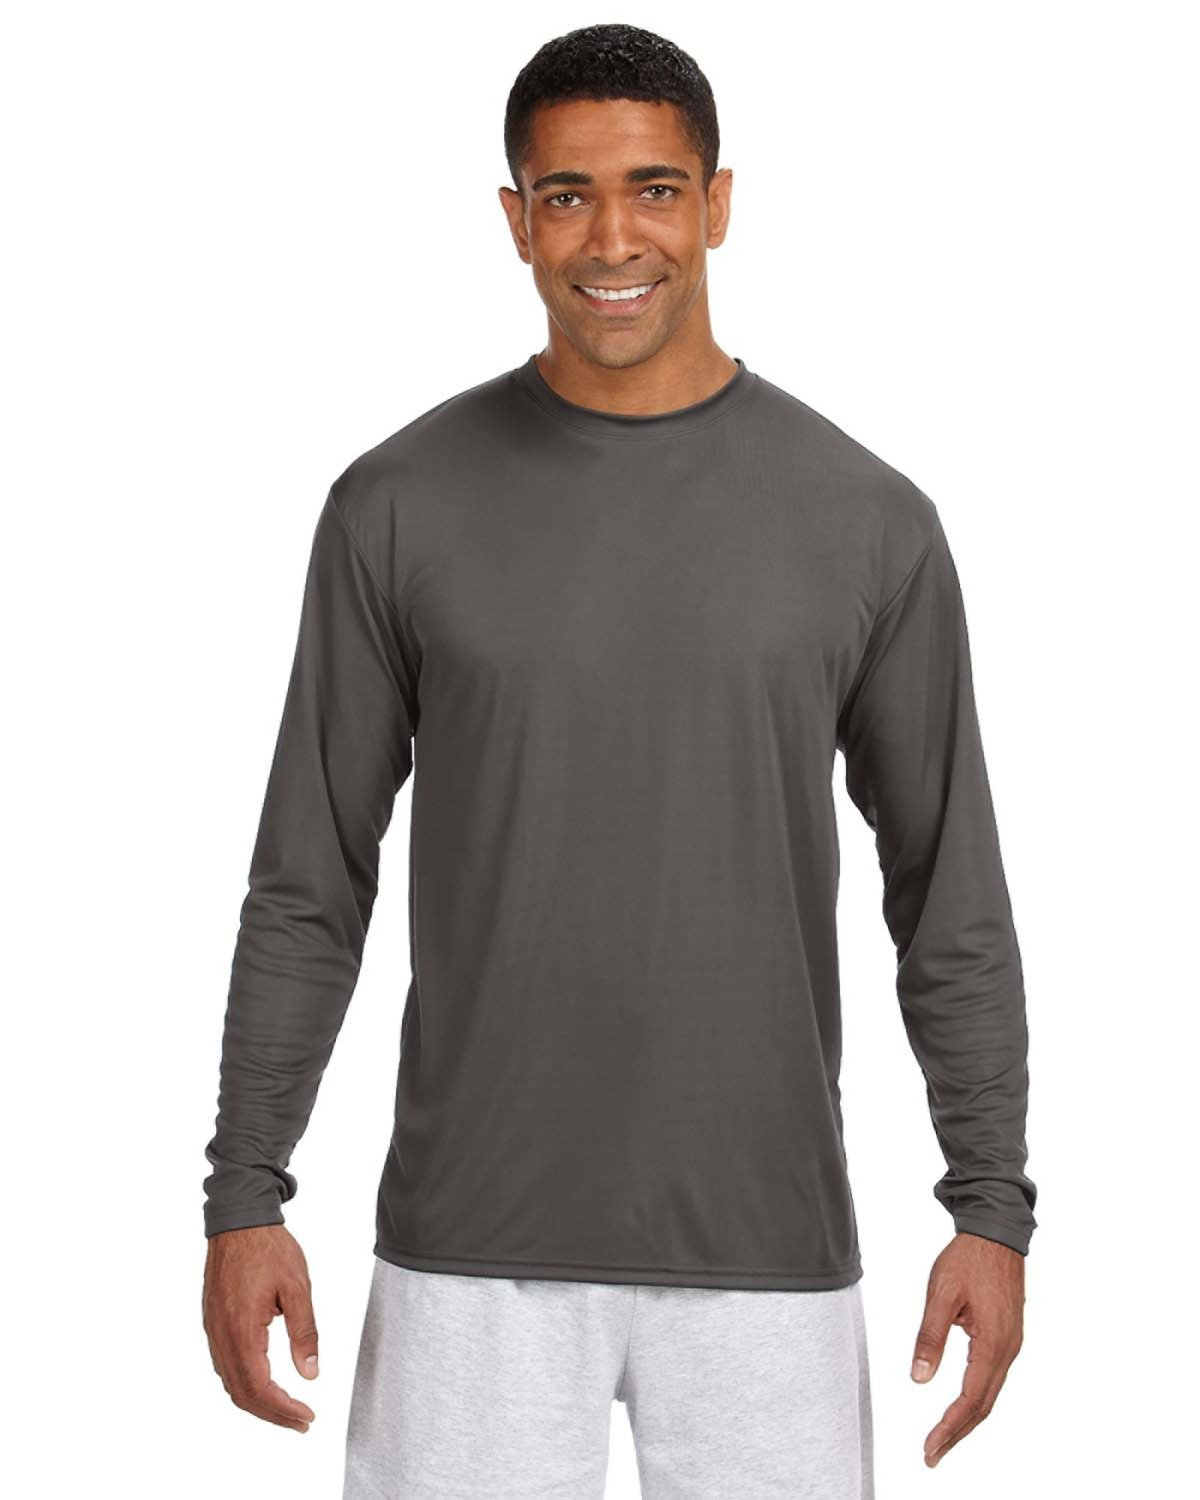 A4 Men's Cooling Performance Long Sleeve T-Shirt GRAPHITE